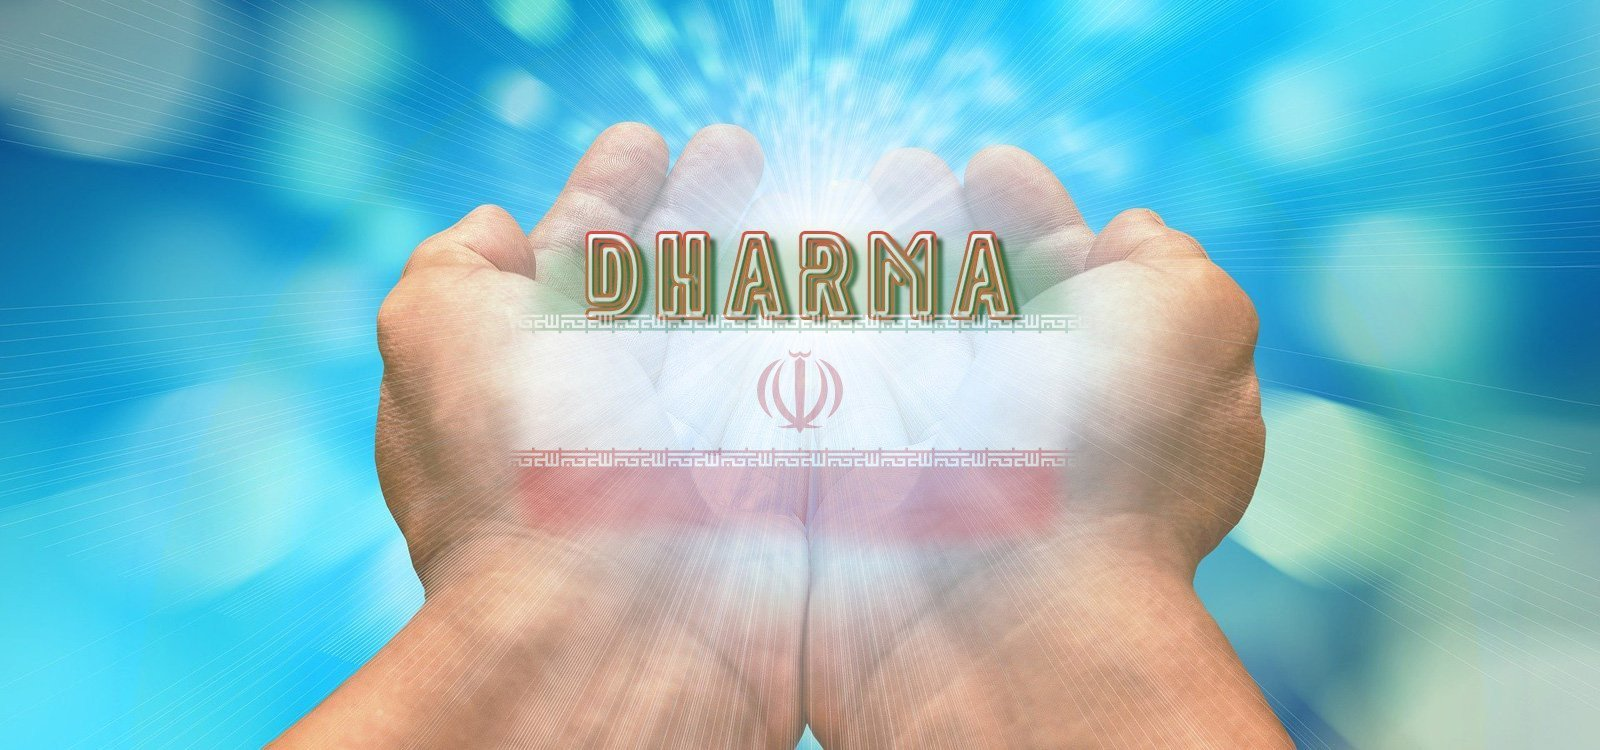 Iranian hackers attack exposed RDP servers to deploy Dharma ransomware